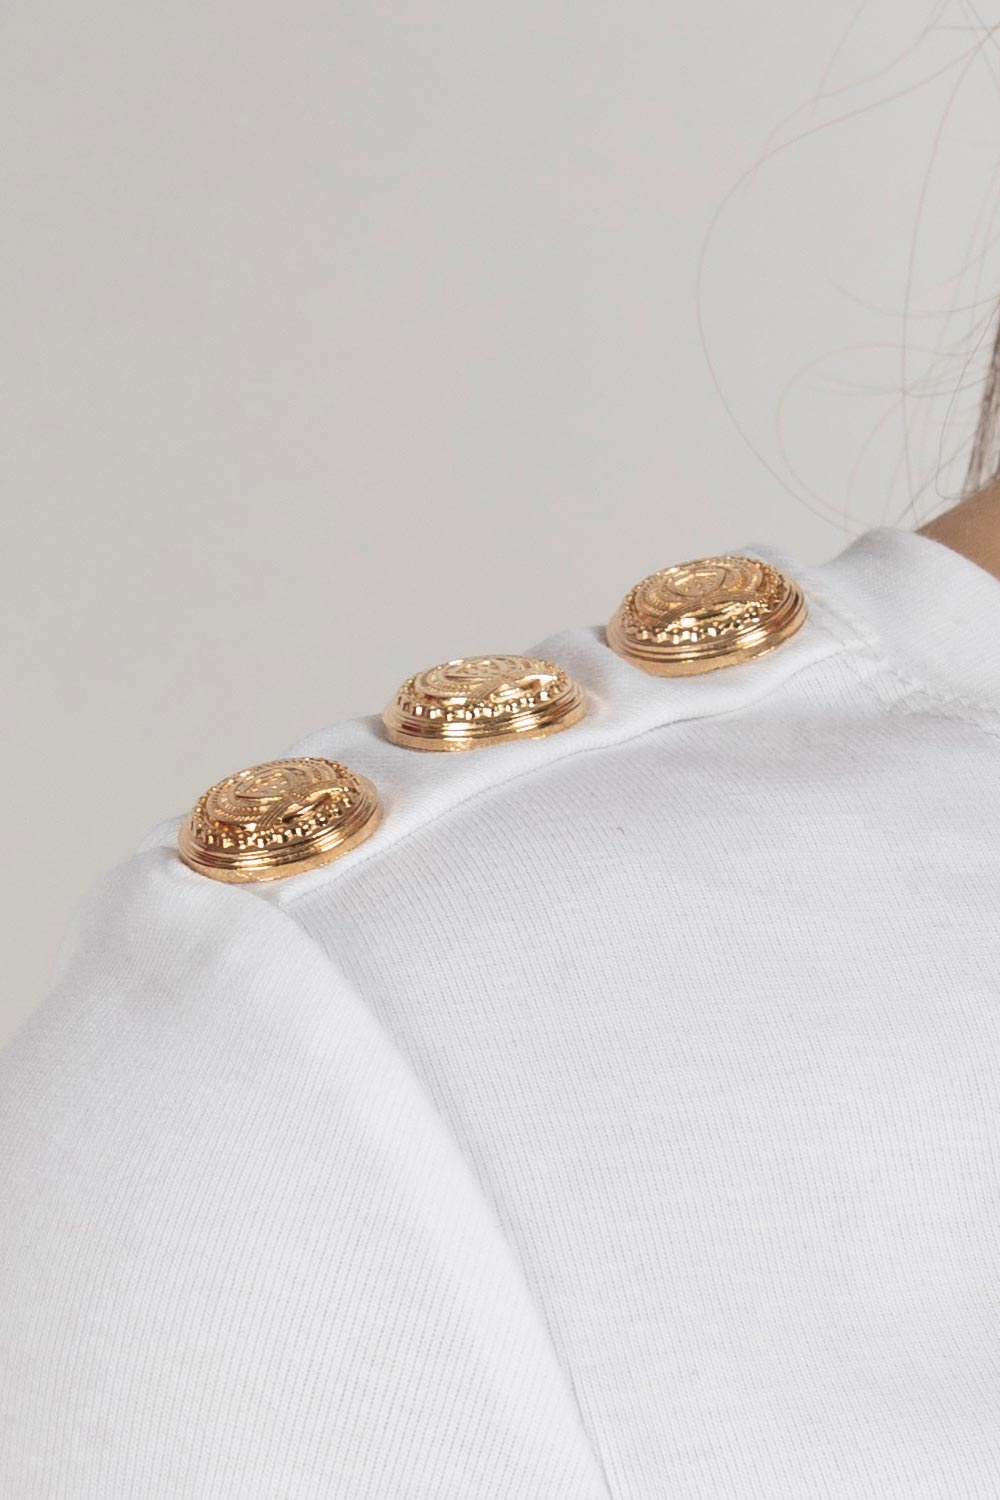 gold button balmain inspired t shirt